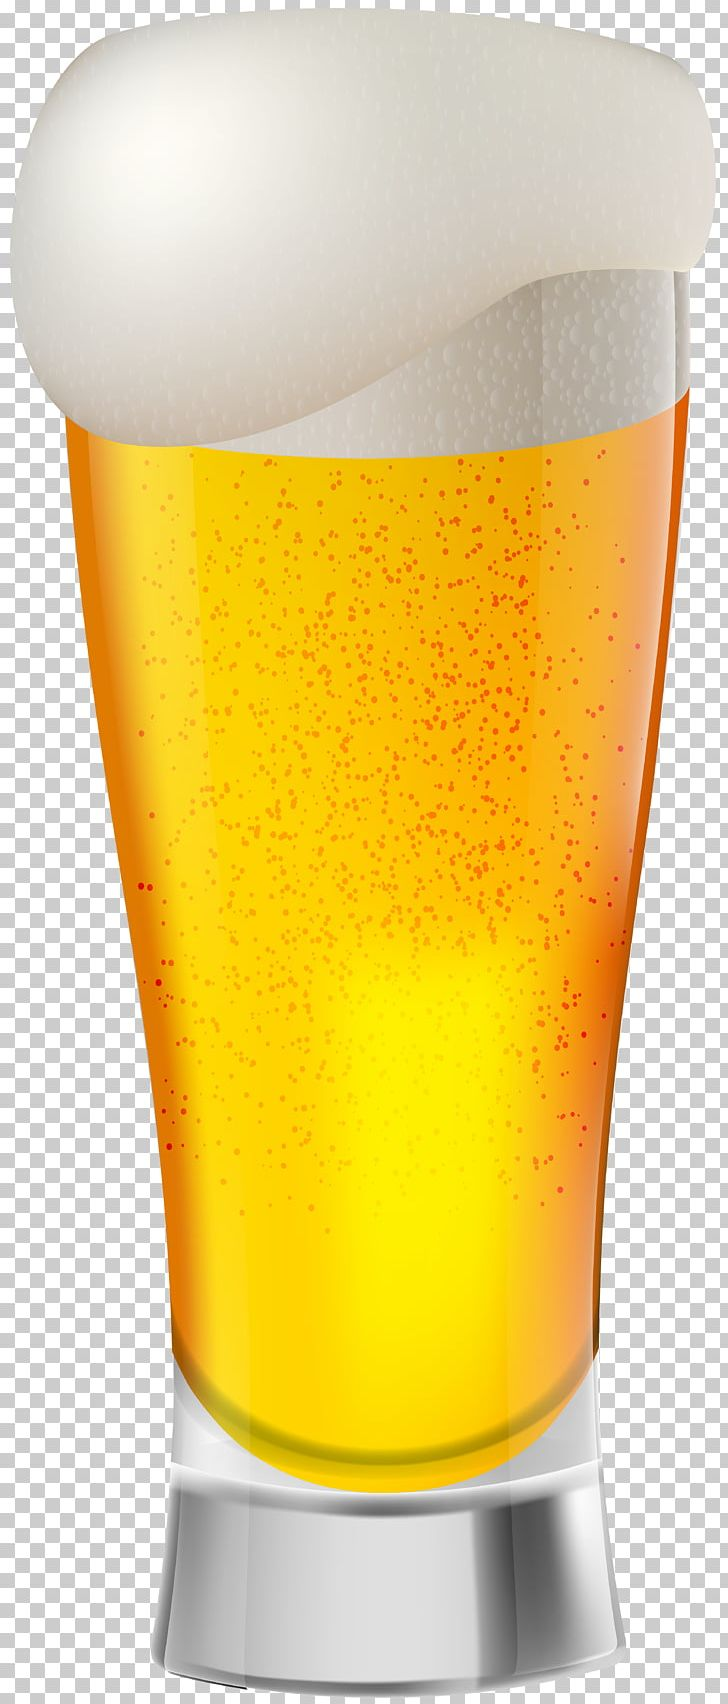 Beer pint glass clipart clip free download Beer Pint Glass Orange Drink United States Of America PNG, Clipart ... clip free download